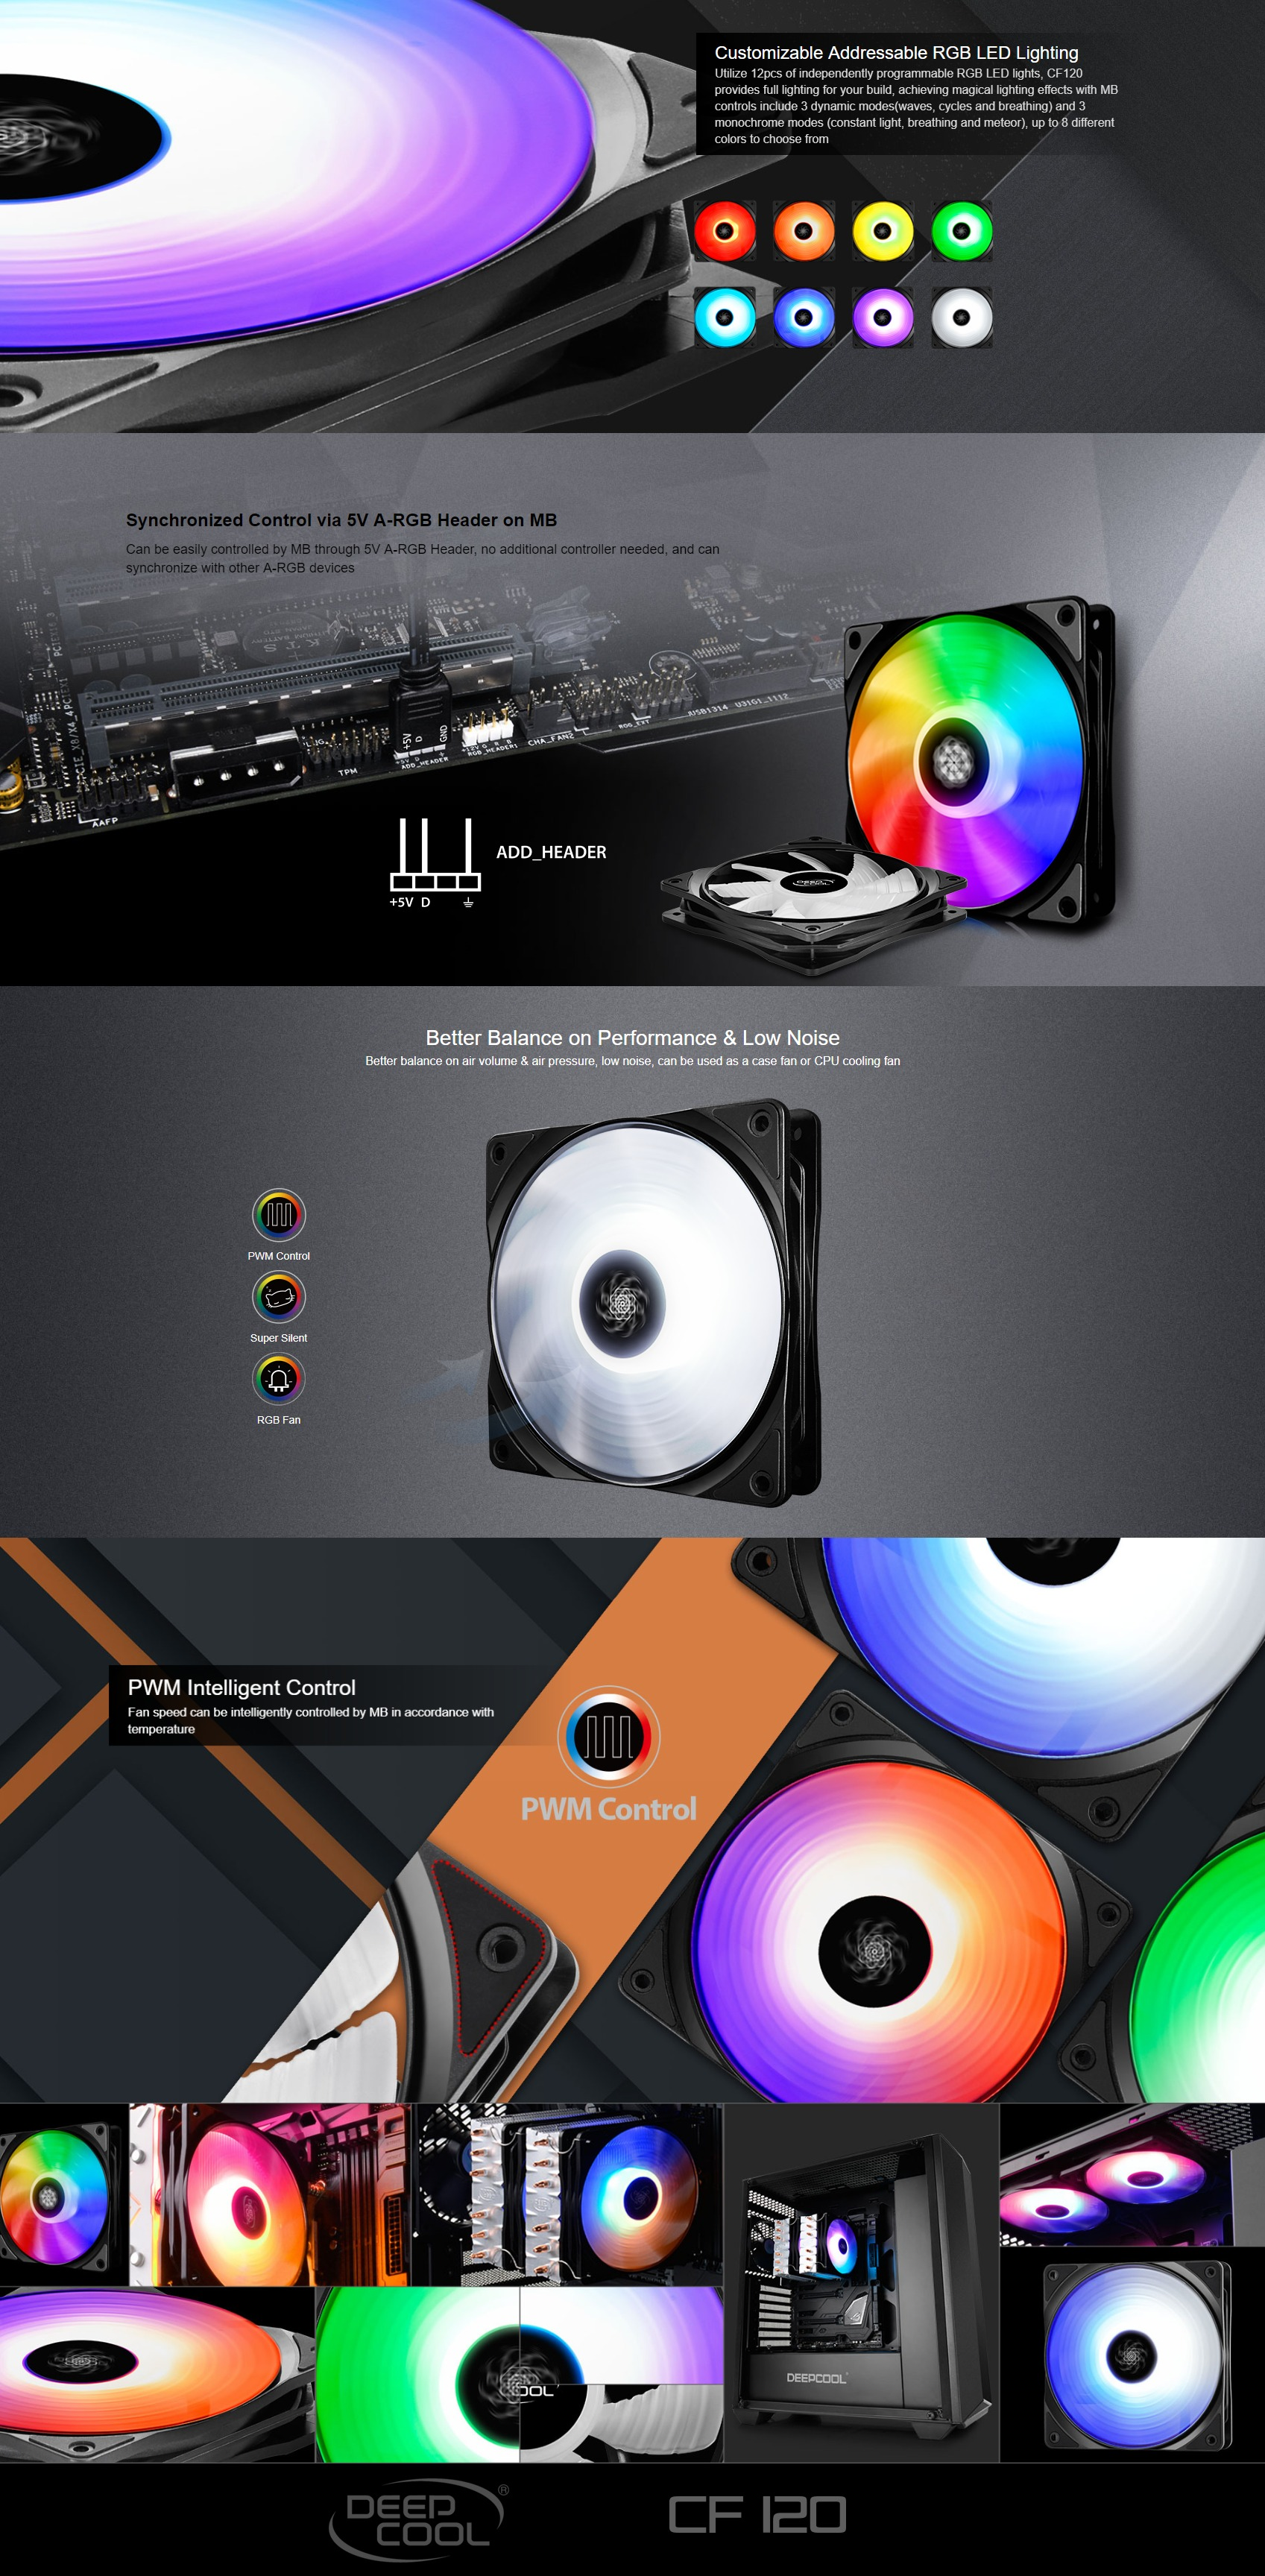 A large marketing image providing additional information about the product Deepcool CF-120 120mm ARGB Fan - Additional alt info not provided